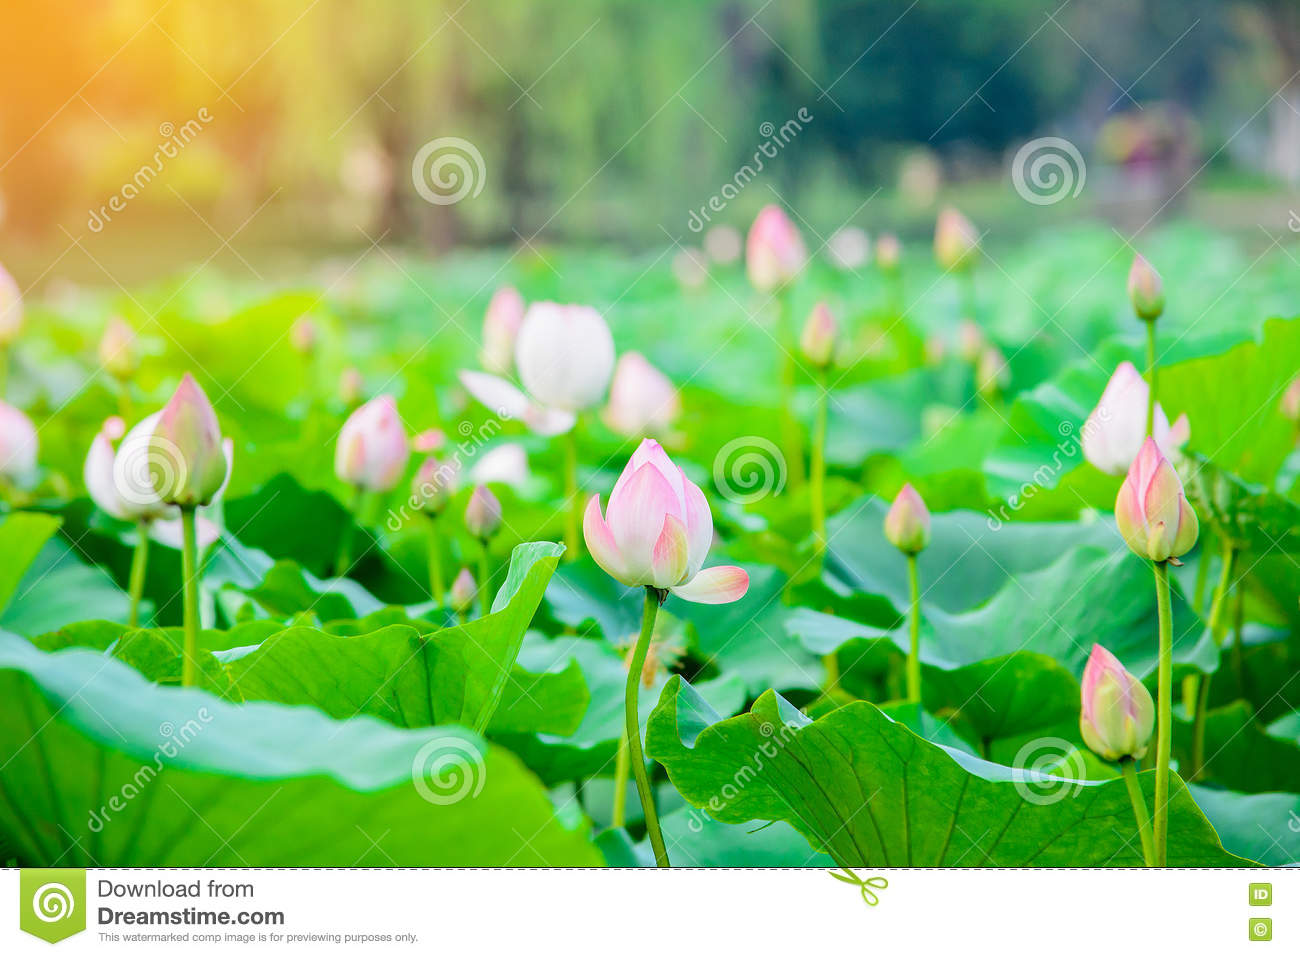 Lotus Flower Gardenlotus Pond With Sun Light Effect Stock Image